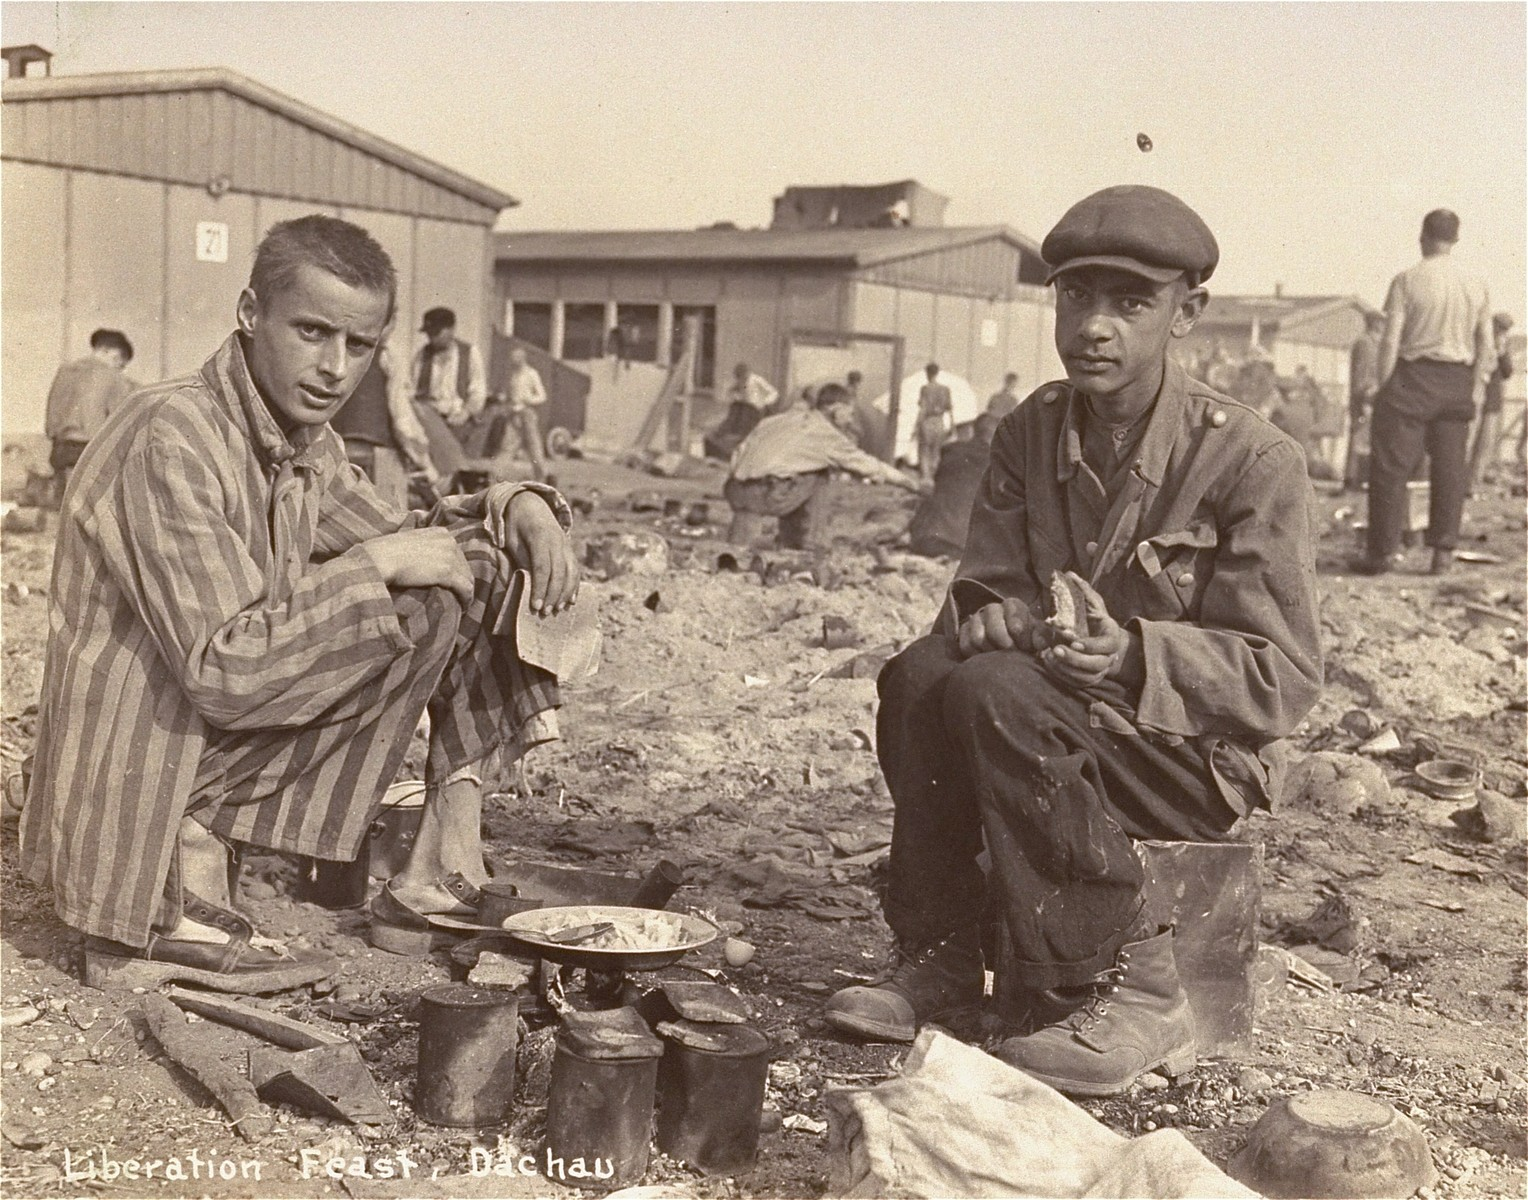 Two survivors prepare food outside the barracks.  The man on the right, presumably, is Jean (Johnny) Voste, born in Belgian Congo, who was the only black prisoner in Dachau.